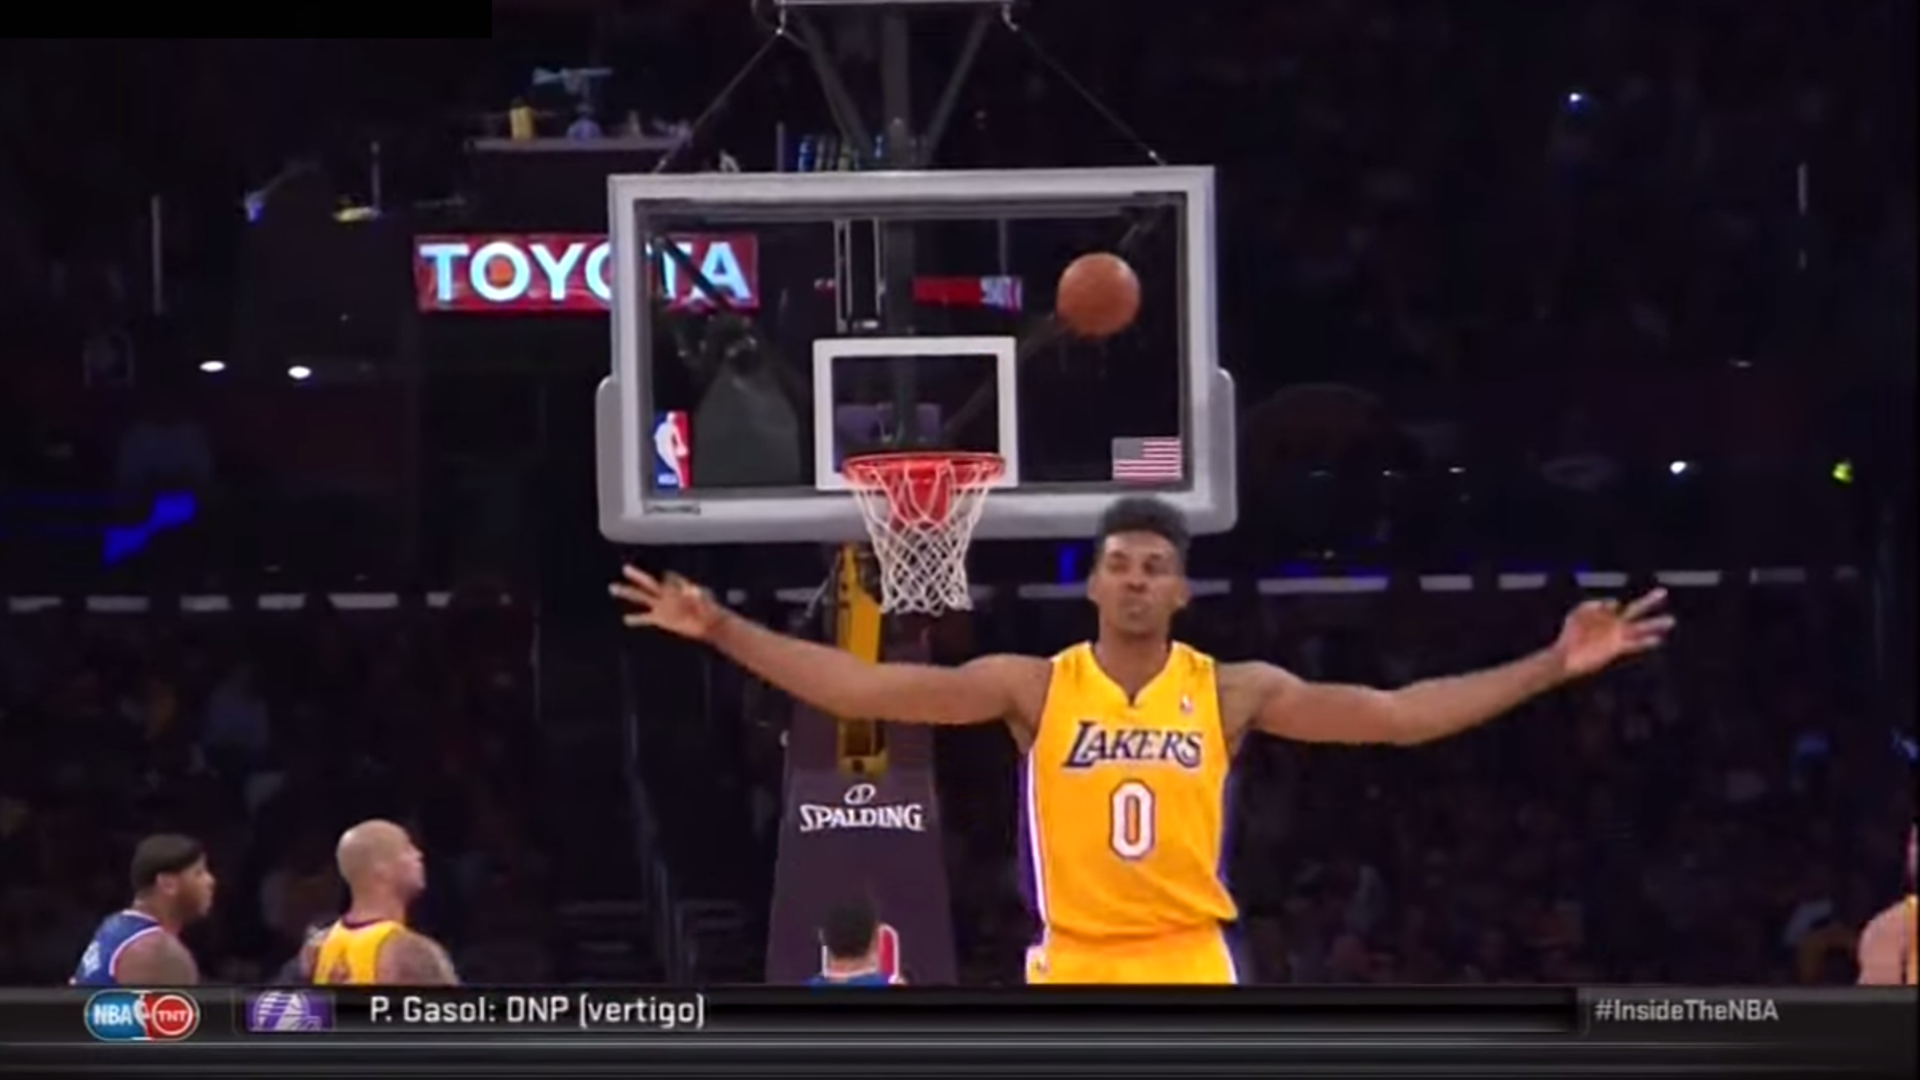 Swaggy P transcribed Lakers Nick Youngs greatest 1920x1080